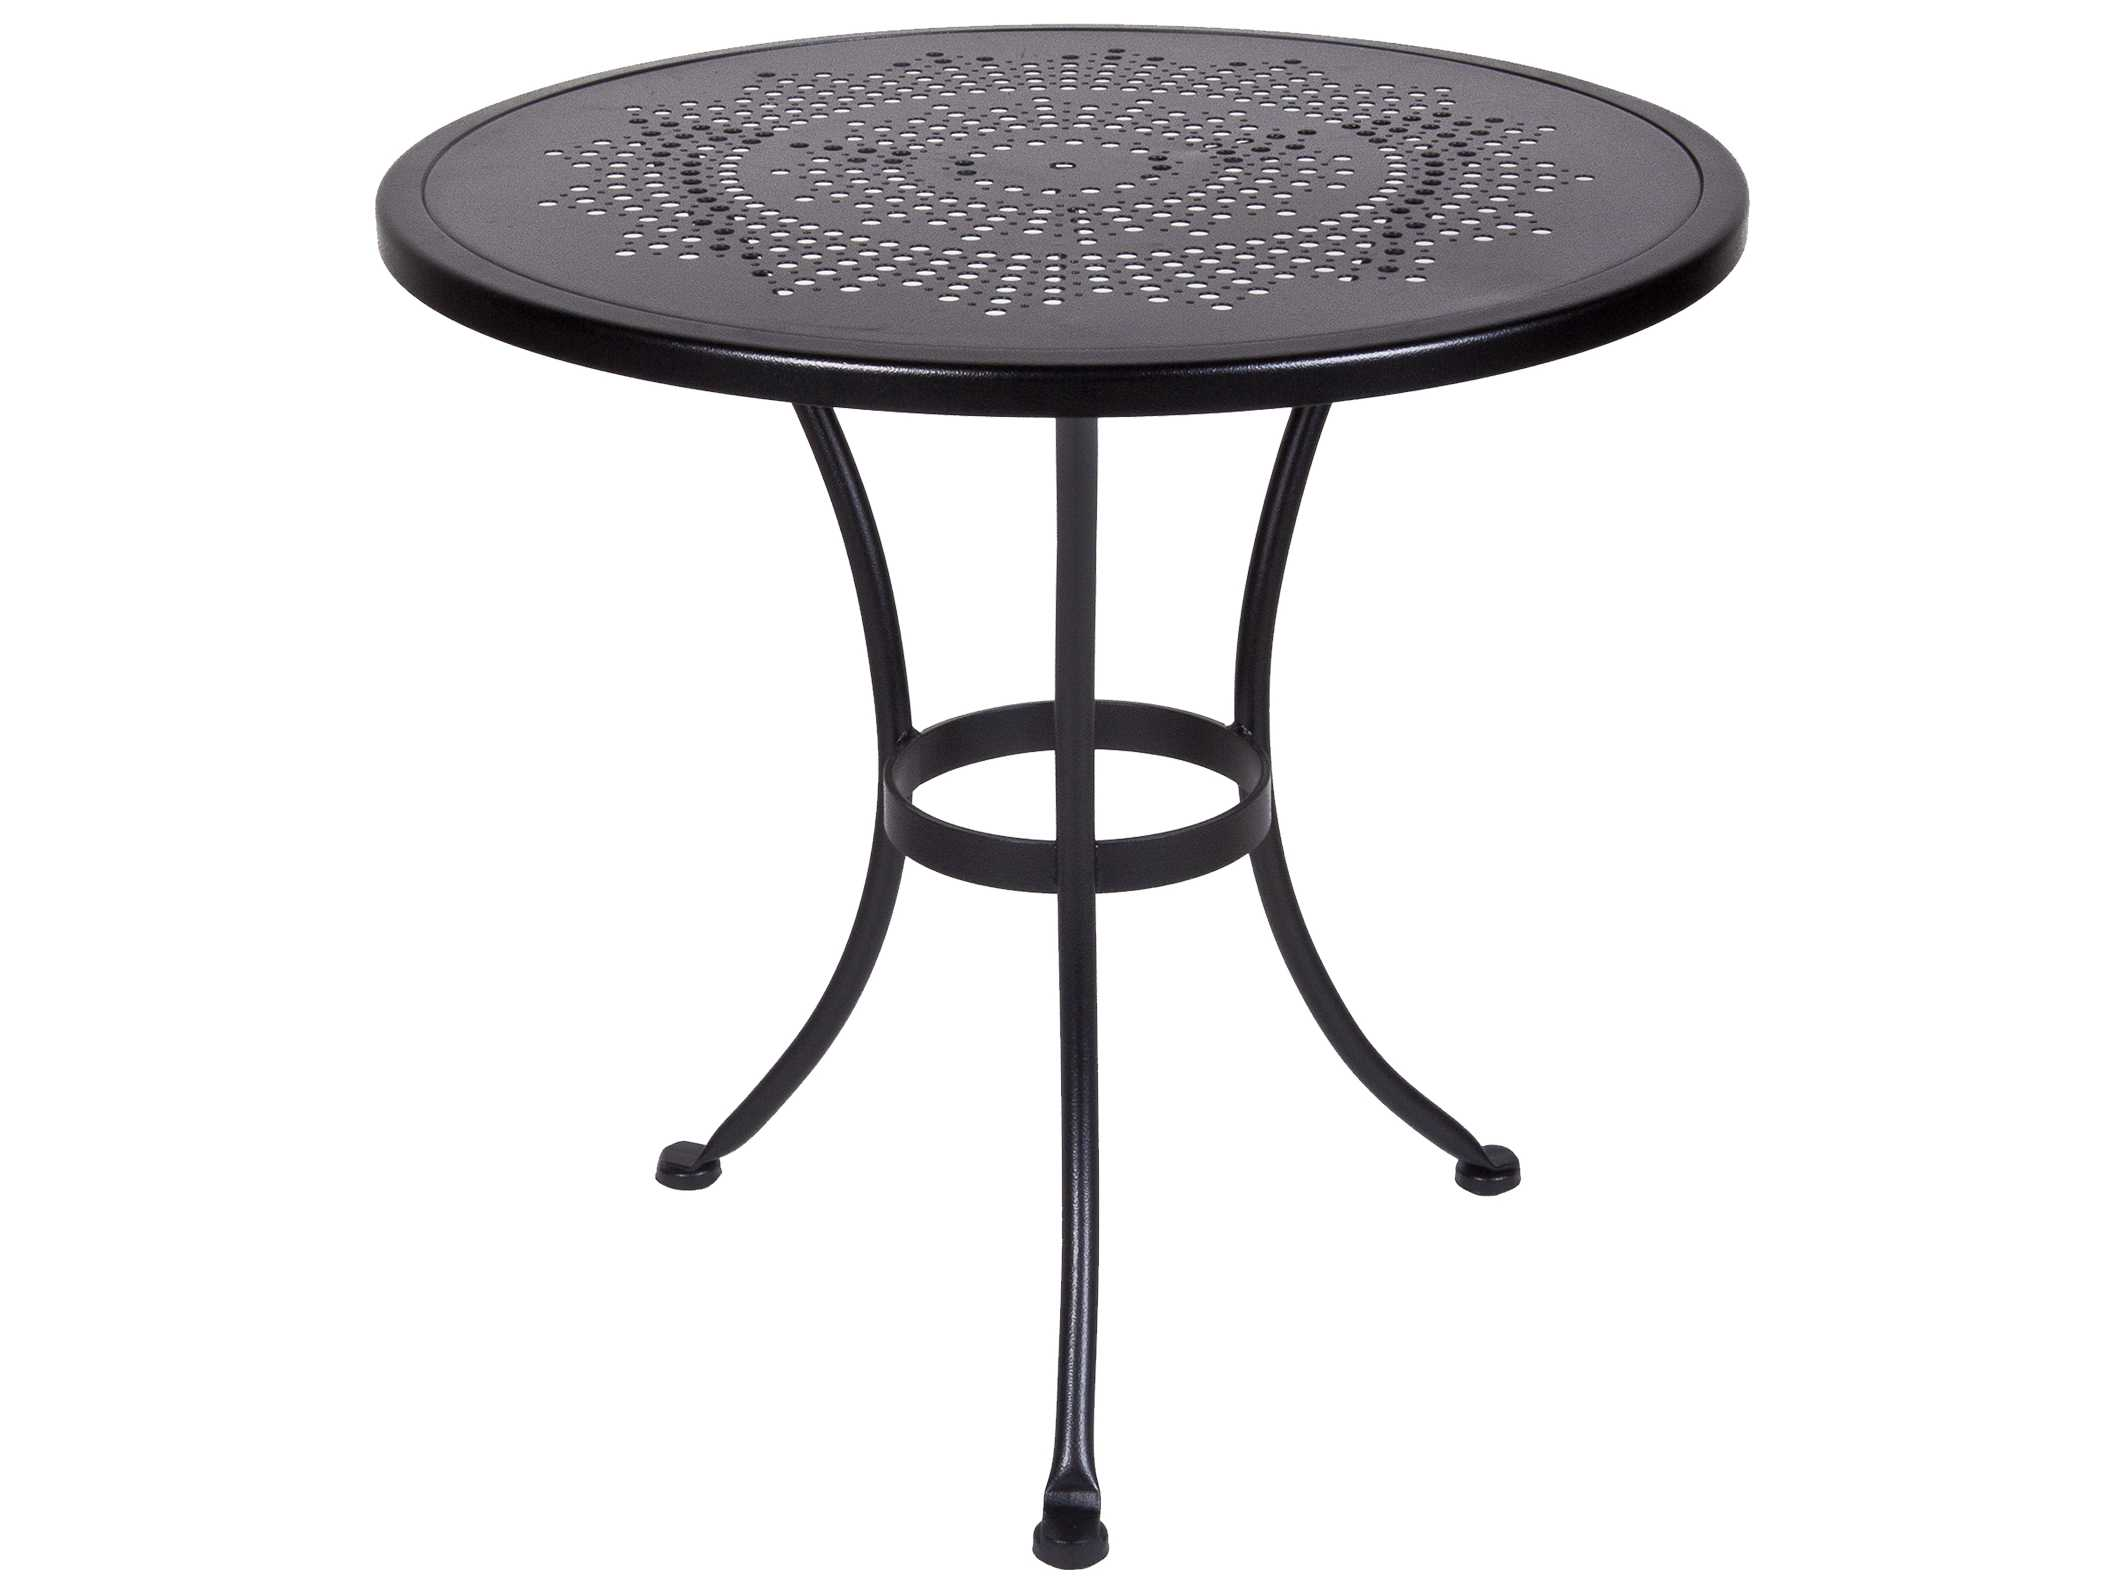 ow lee bistro wrought iron stamped 30 round table with umbrella hole ow30su. Black Bedroom Furniture Sets. Home Design Ideas